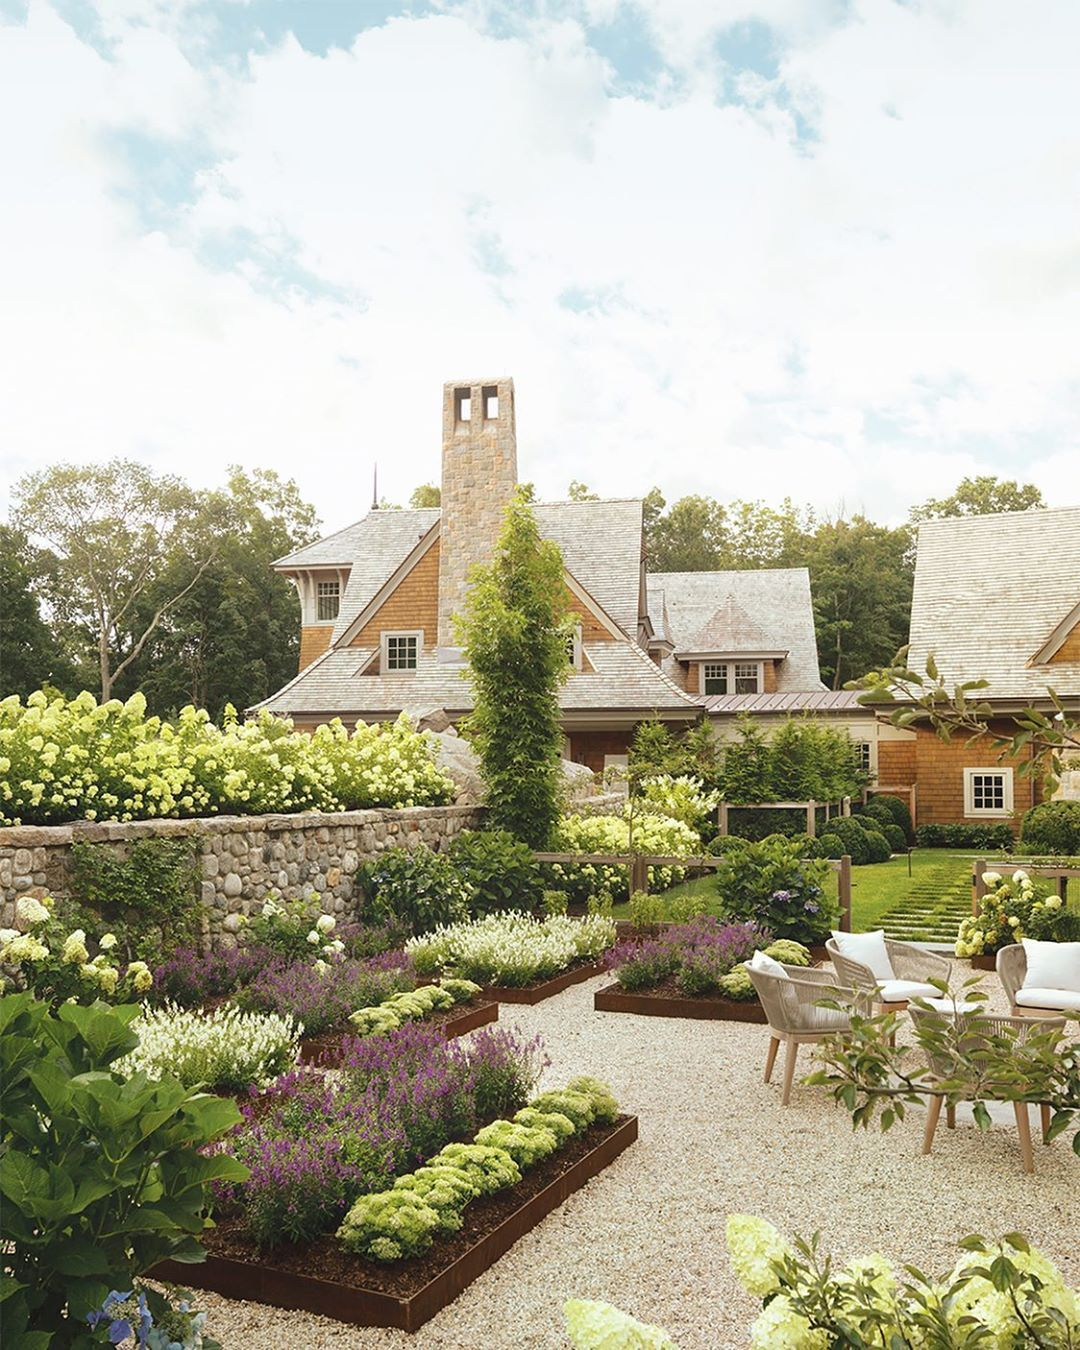 424 Likes 8 Comments New England Home Magazine Nehomemagazine On Instagram A Dreamy Landscape Desi In 2020 New England Homes Landscape Design Dreamy Landscapes